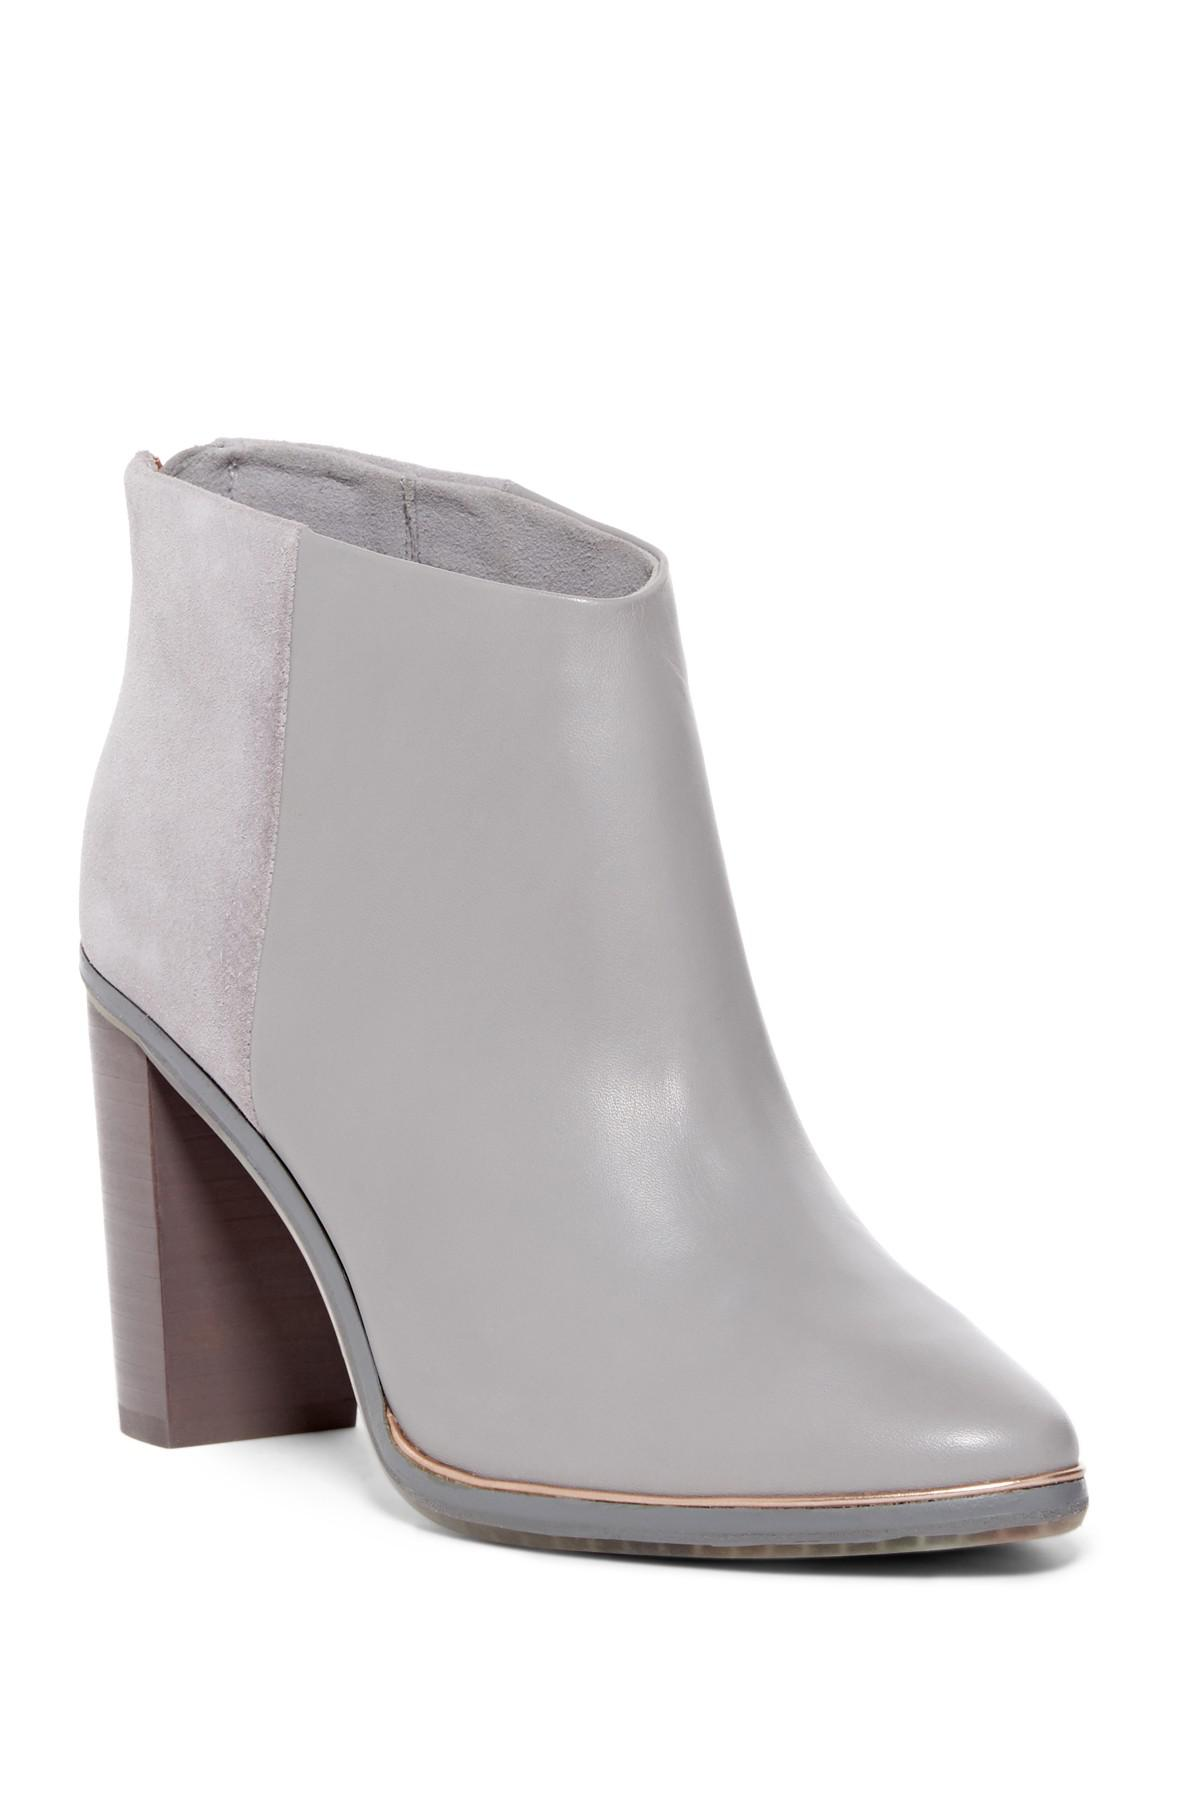 945ea2921346ed Lyst - Ted Baker Azaila Contrast Boot in Gray